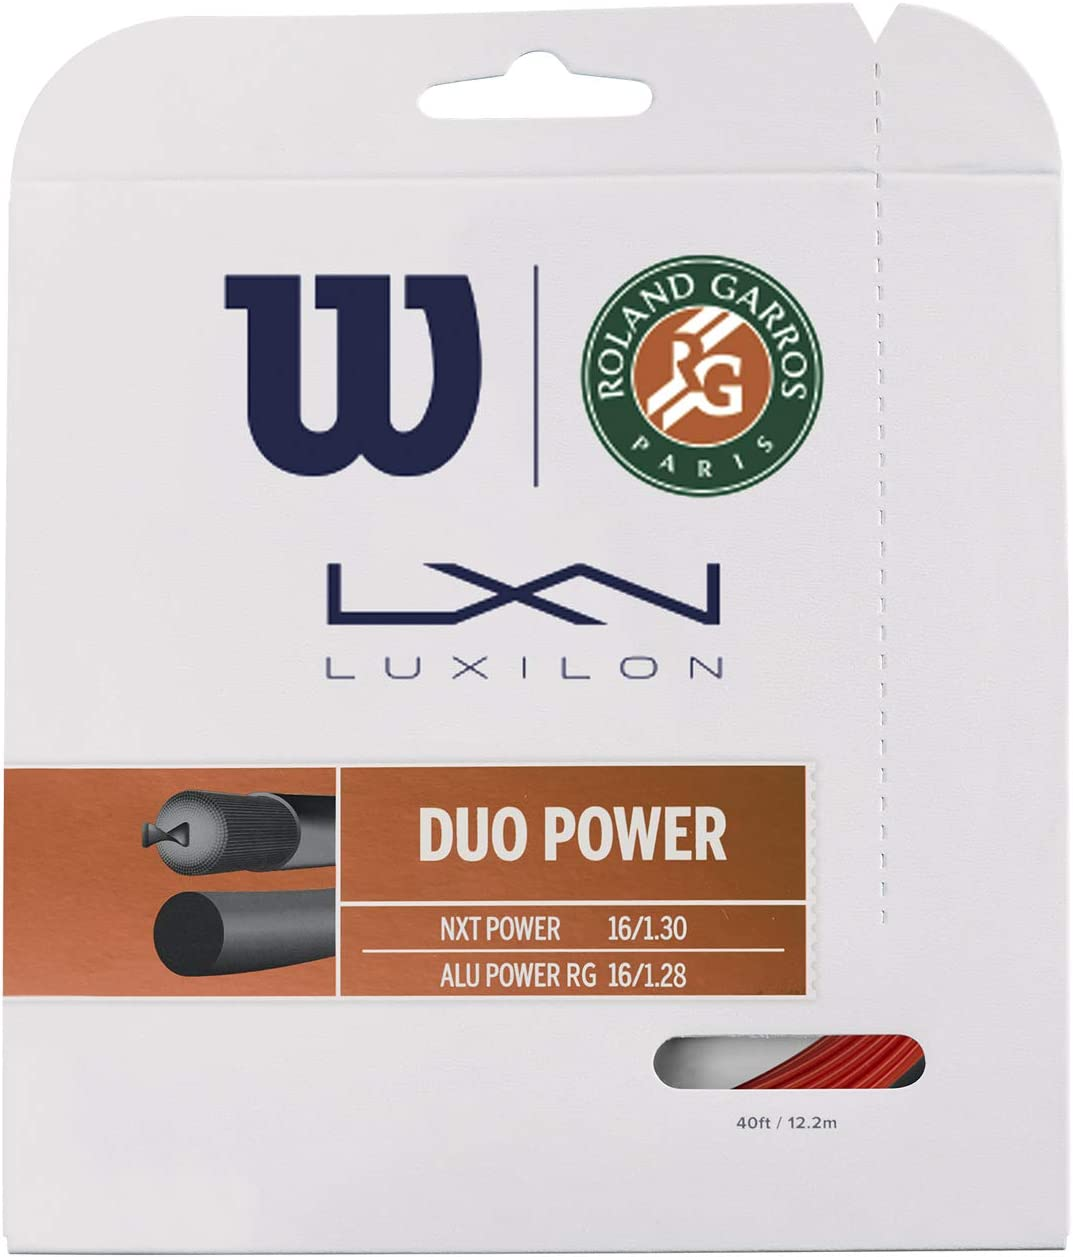 Wilson Unisex-Adult Duo Power Roland Strings Racket NEW before Free shipping / New selling ☆ Bron Garros